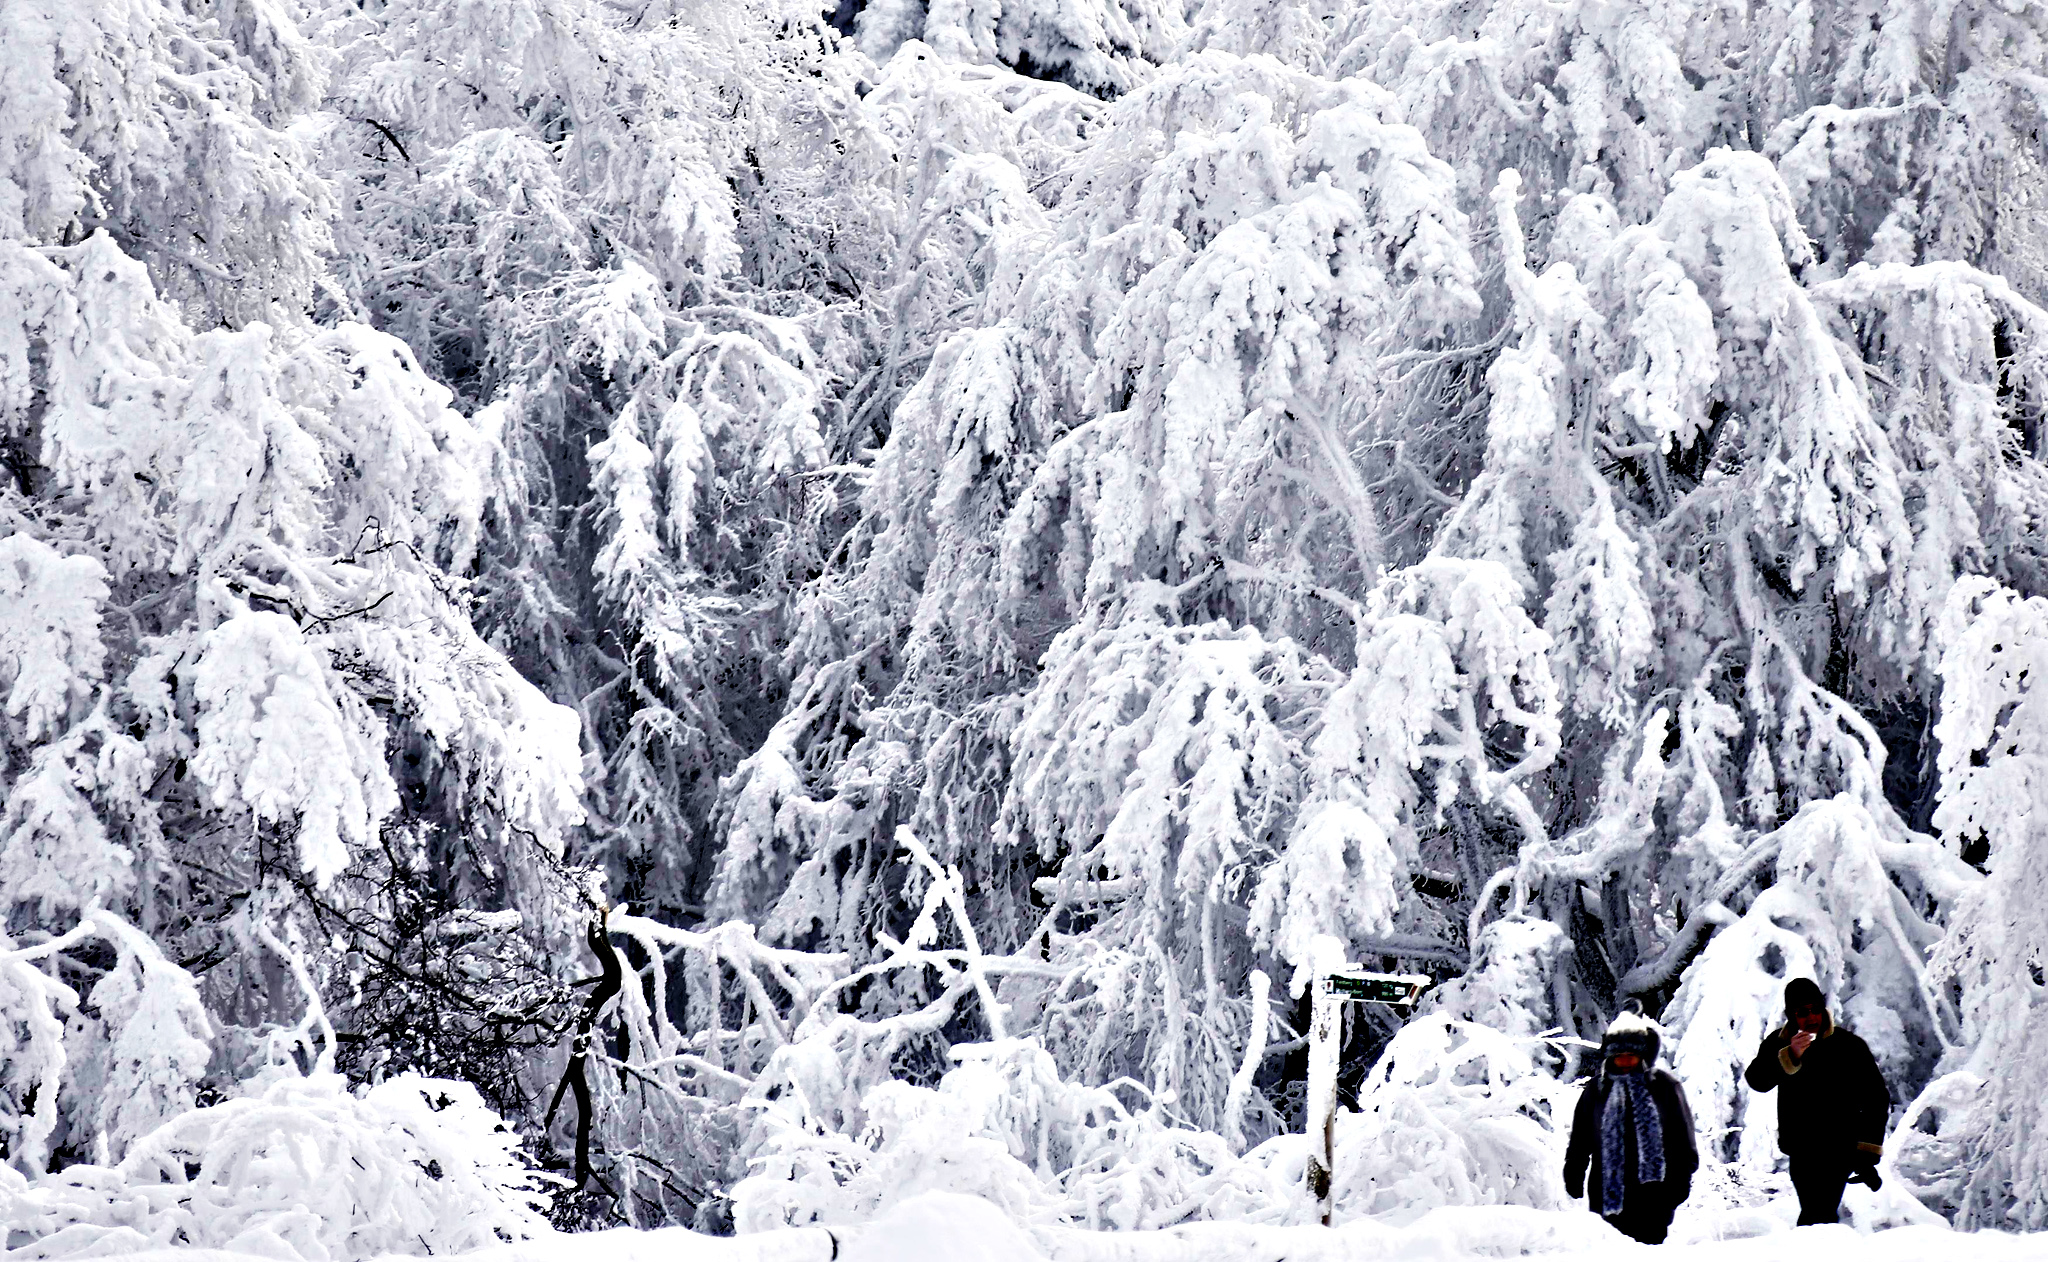 People walk past snow and ice covered trees on top of the Feldberg mountain during a winter day, around 20km outside of Frankfurt, February 5, 2015.